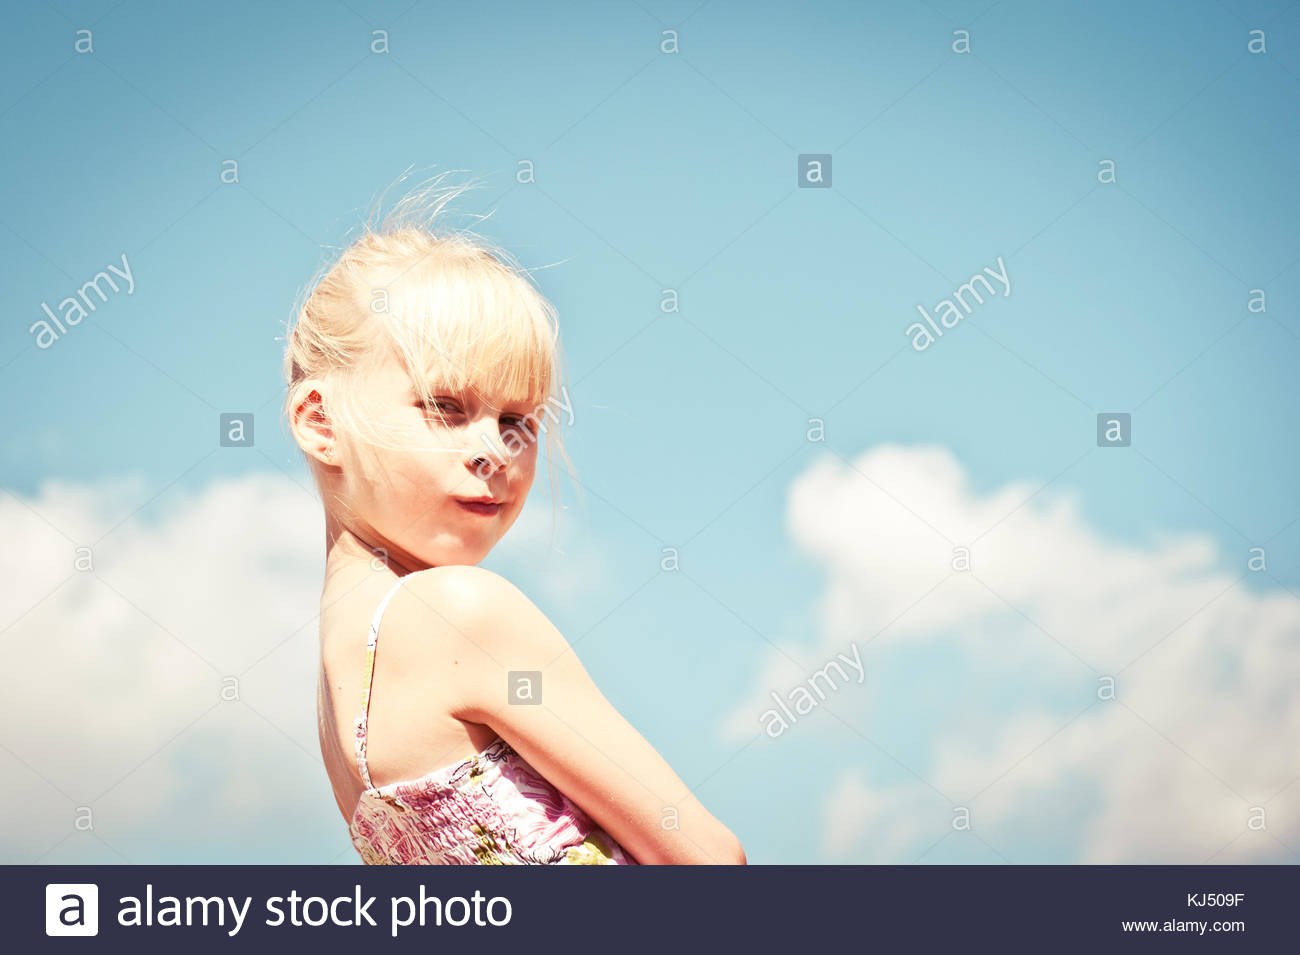 young blonde girl - Stock Image